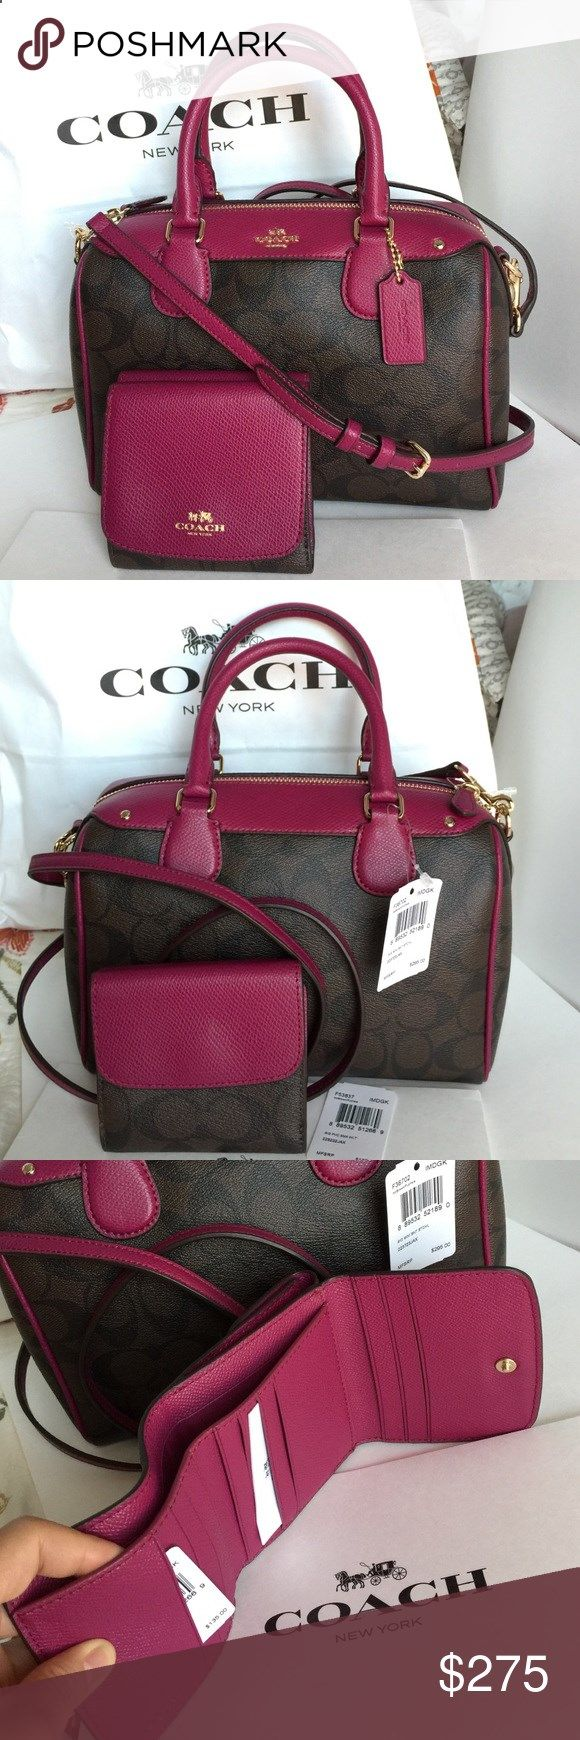 Coach Purse Wallet 100% Authentic Coach Purse and Wallet, both brand new with tag! Coach Bags Crossbody Bags